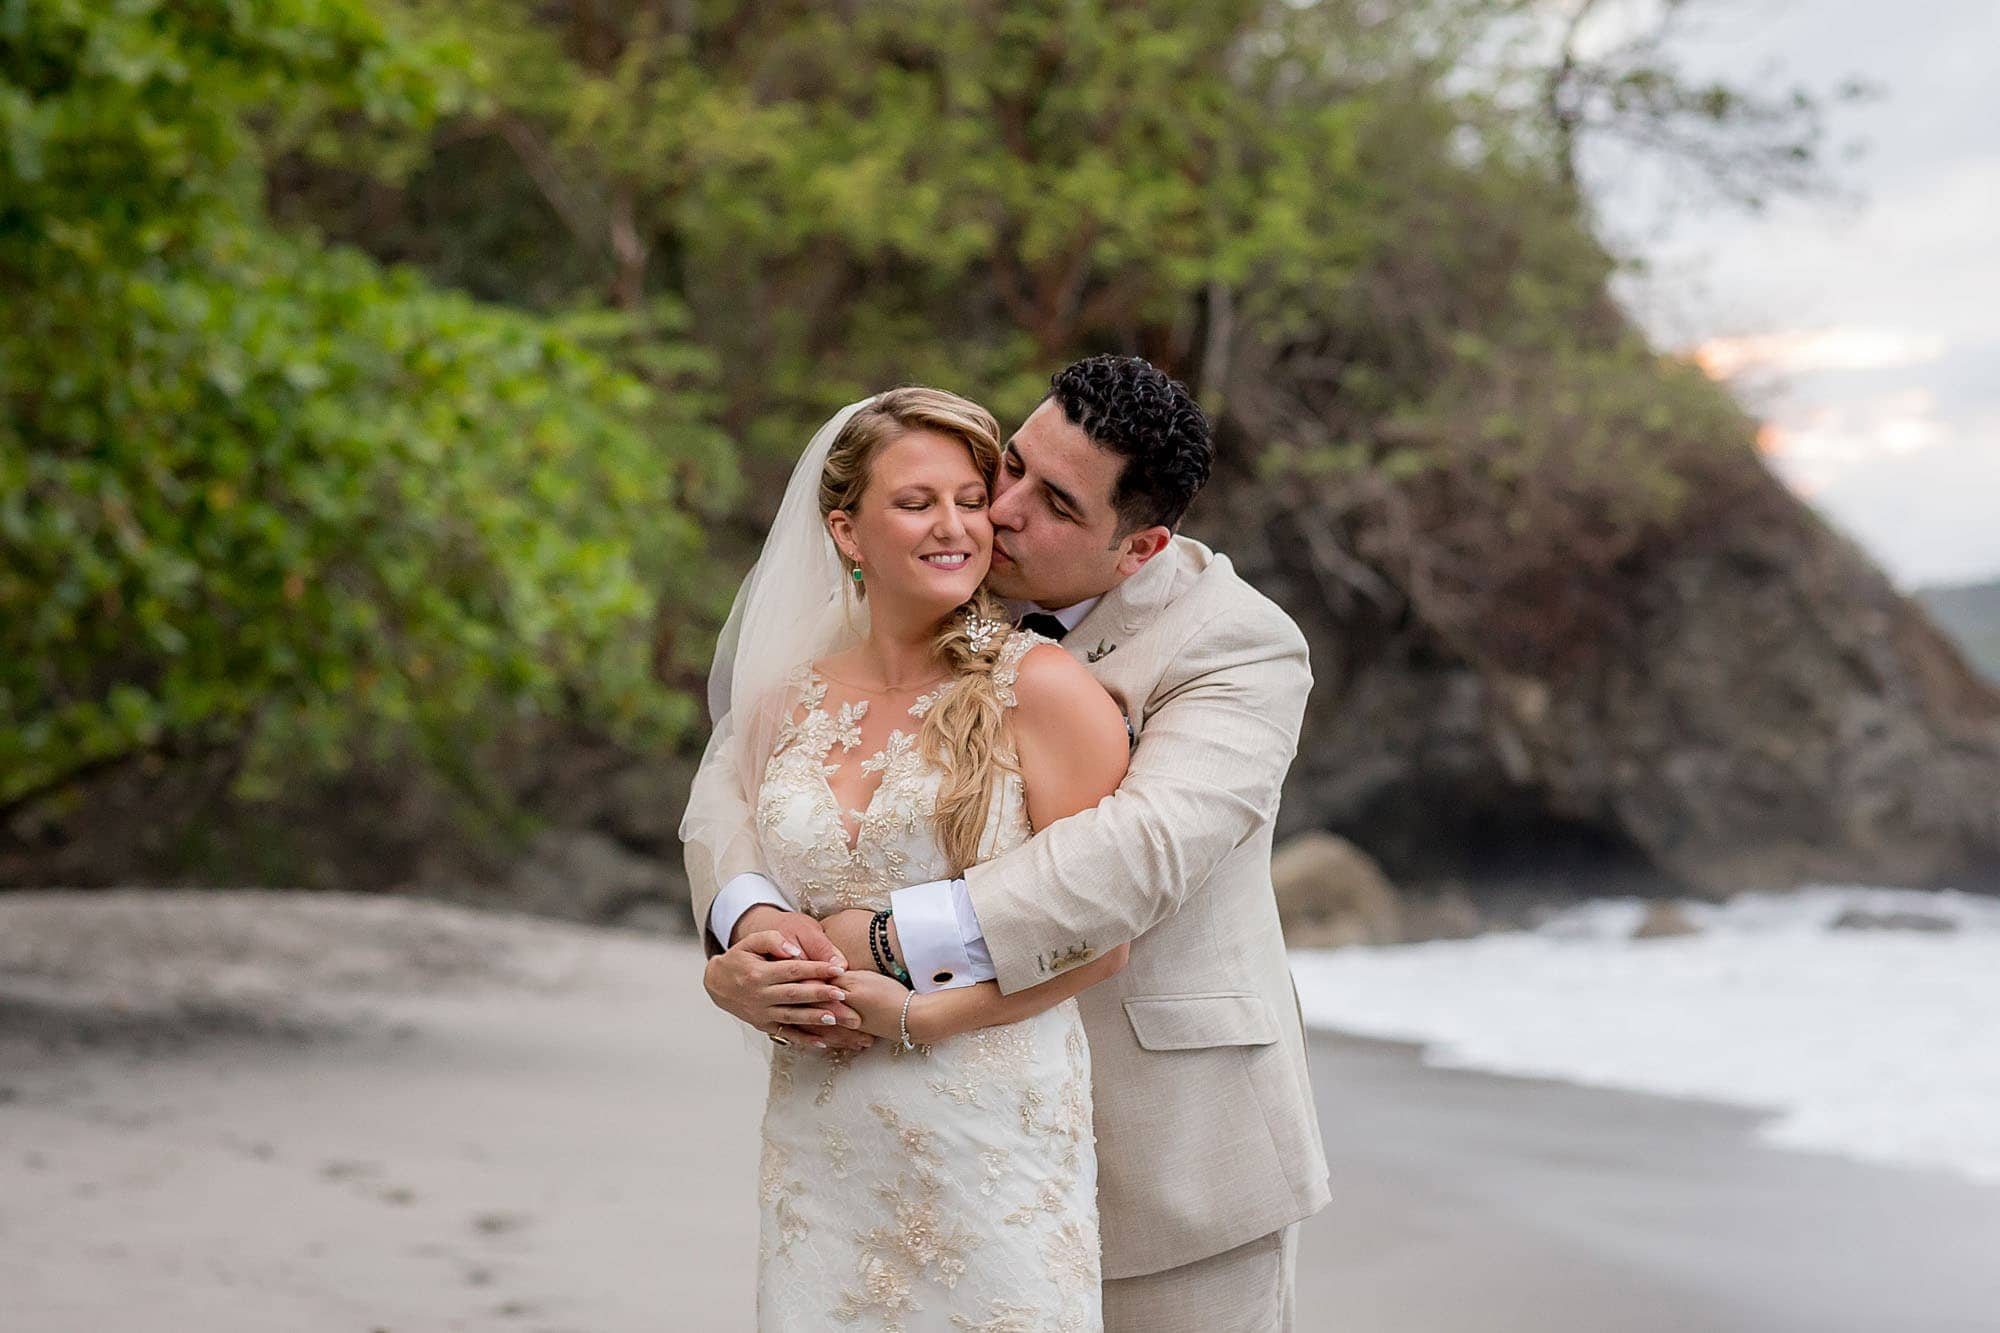 The bride and groom on the beach before the beach wedding reception